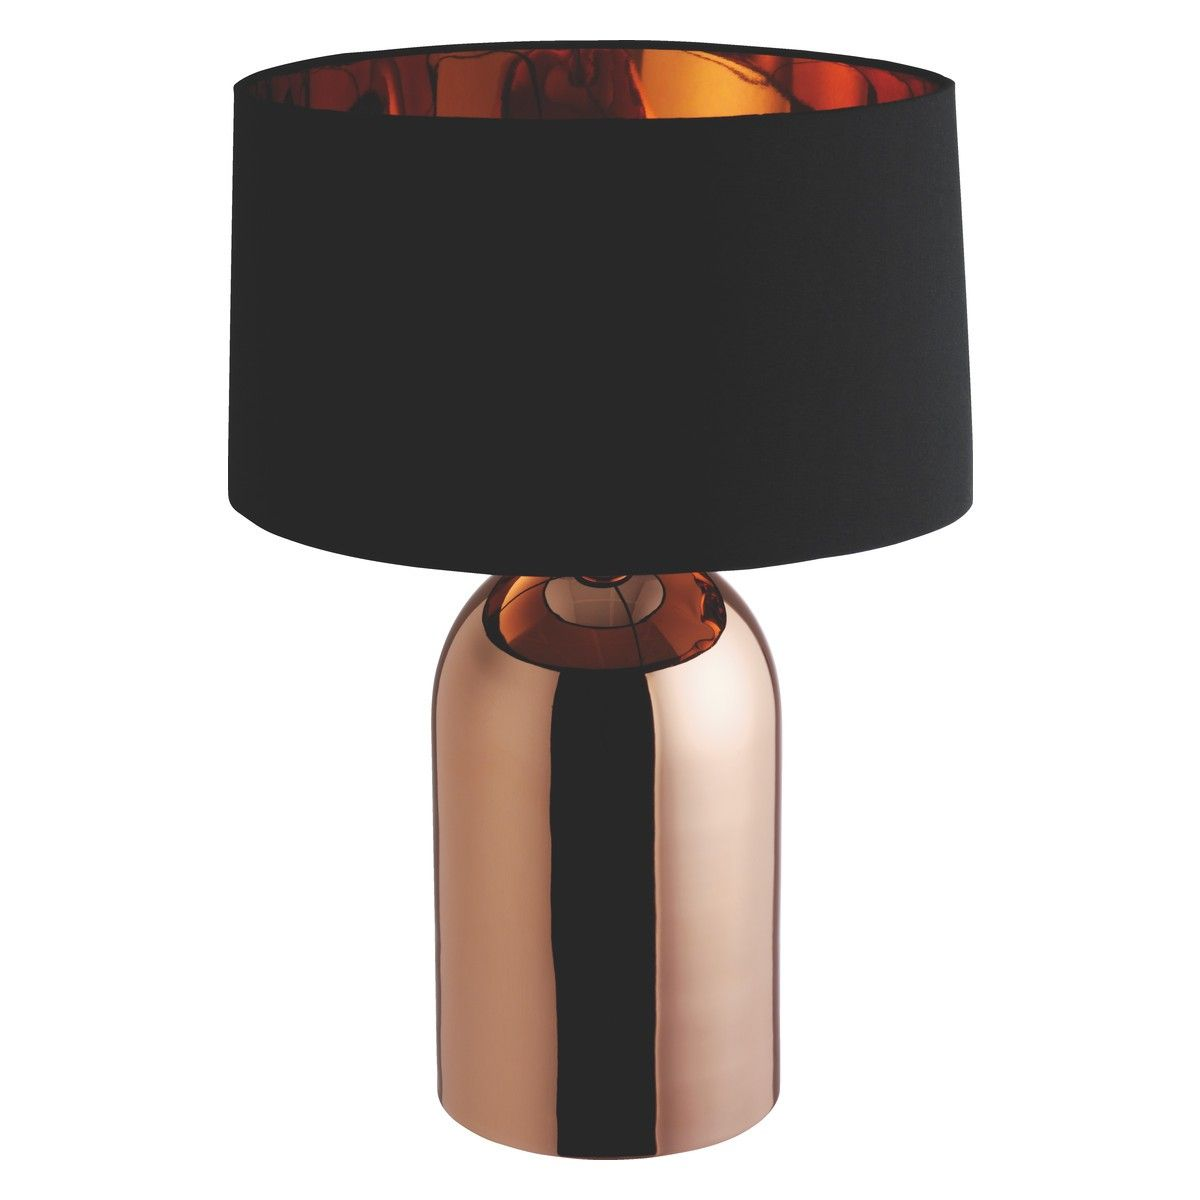 Hallie Copper Table Lamp With Black And Copper Shade Copper Table Lamp Copper Lamps Copper Table